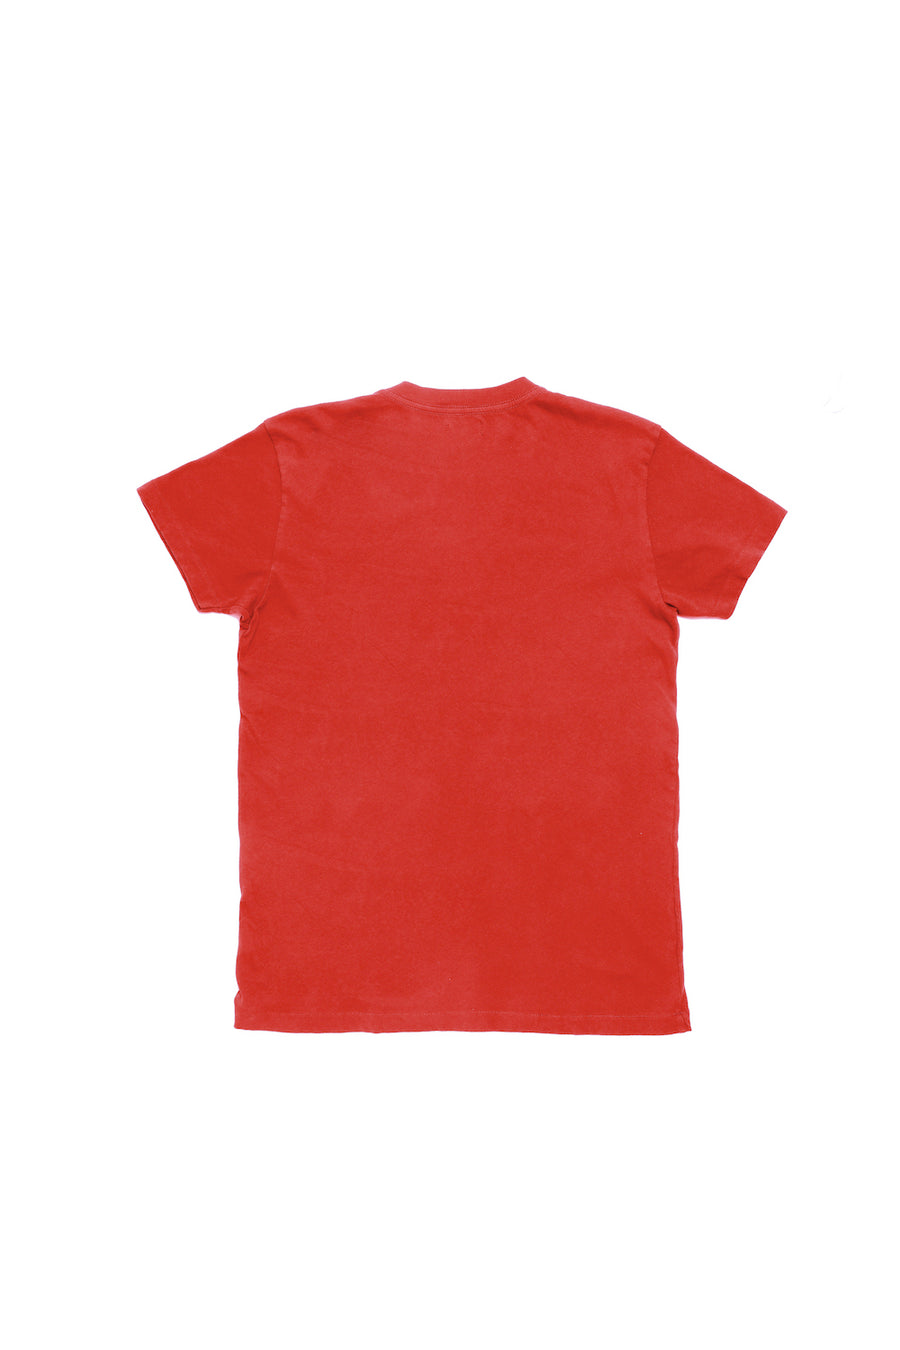 Kelly Cole Signature Short Sleeved Crewneck T Shirt - Brick